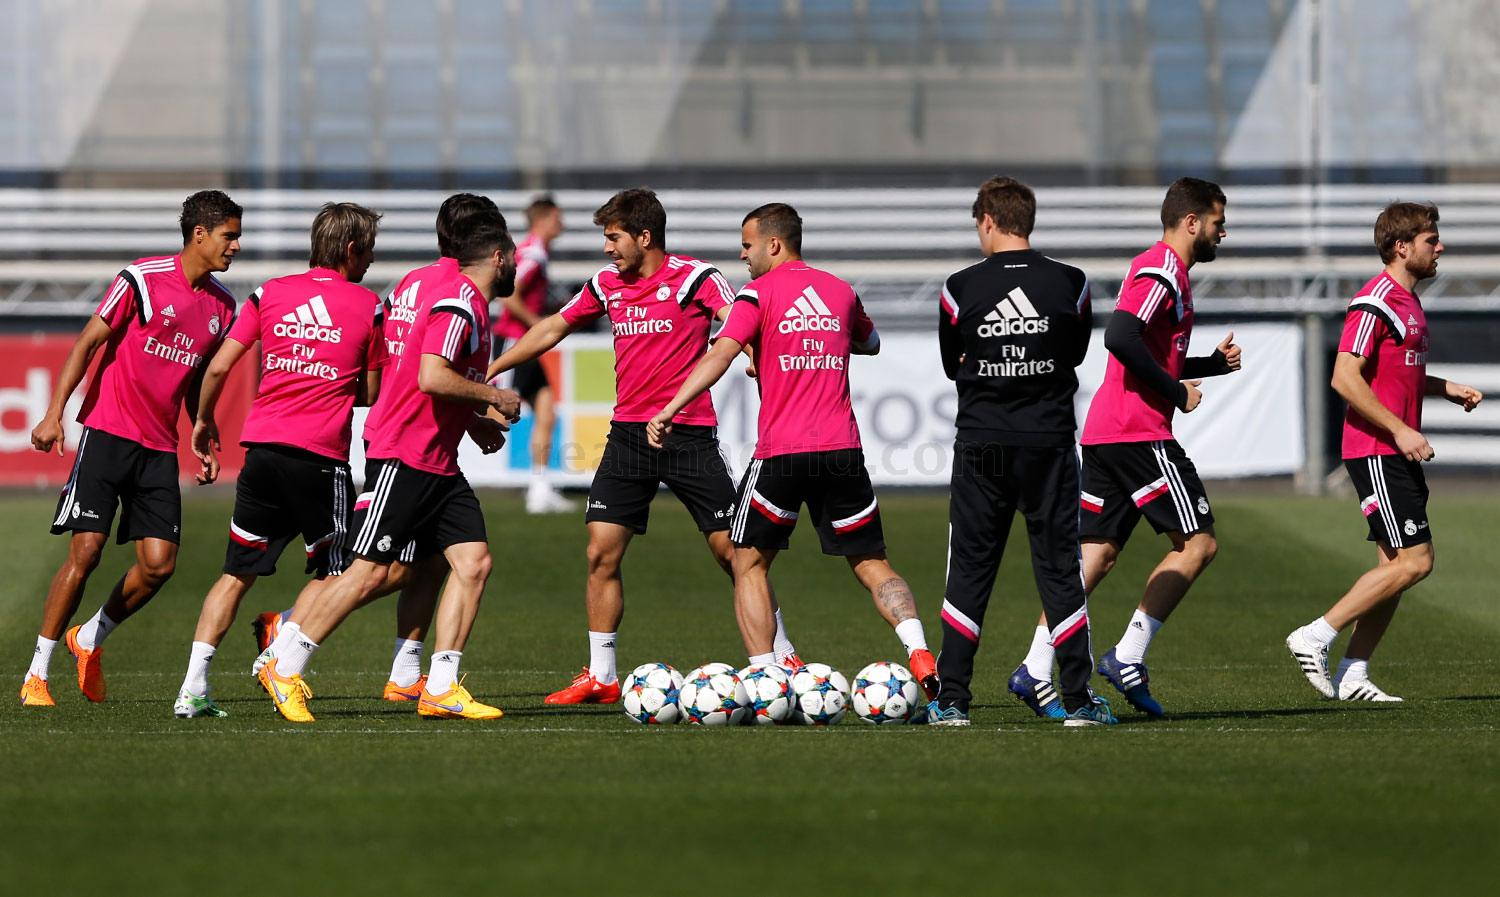 Real Madrid - Entrenamiento del Real Madrid - 19-04-2015